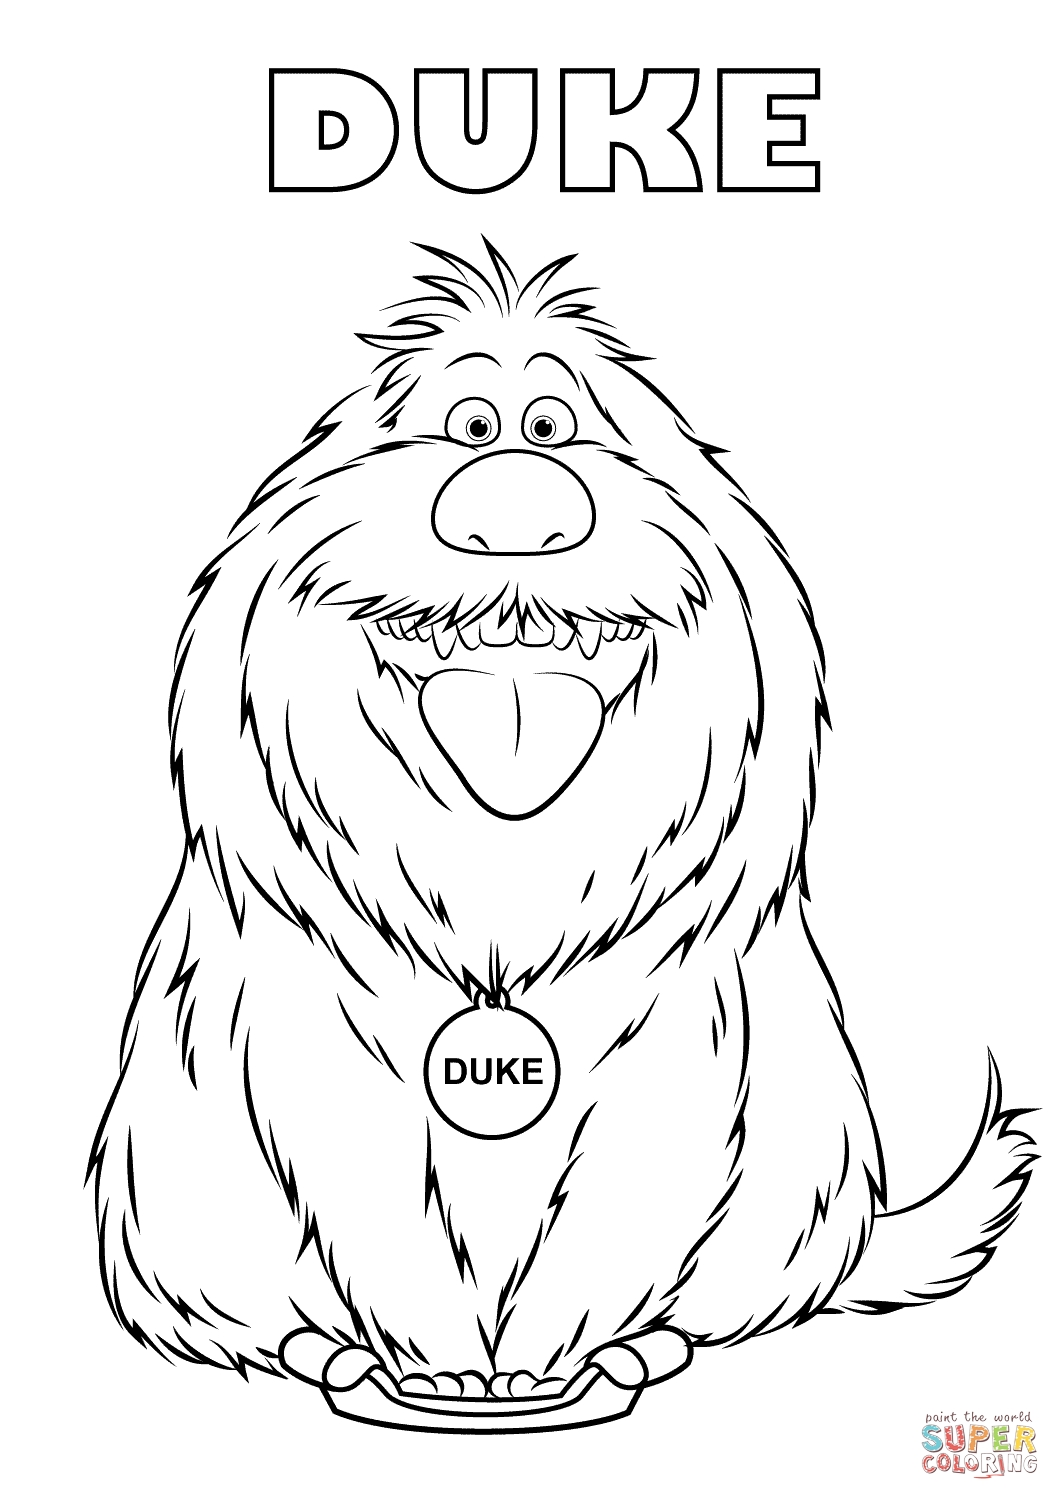 Duke From The Secret Life Of Pets Coloring Page | Free Printable inside August Printable Images To Color